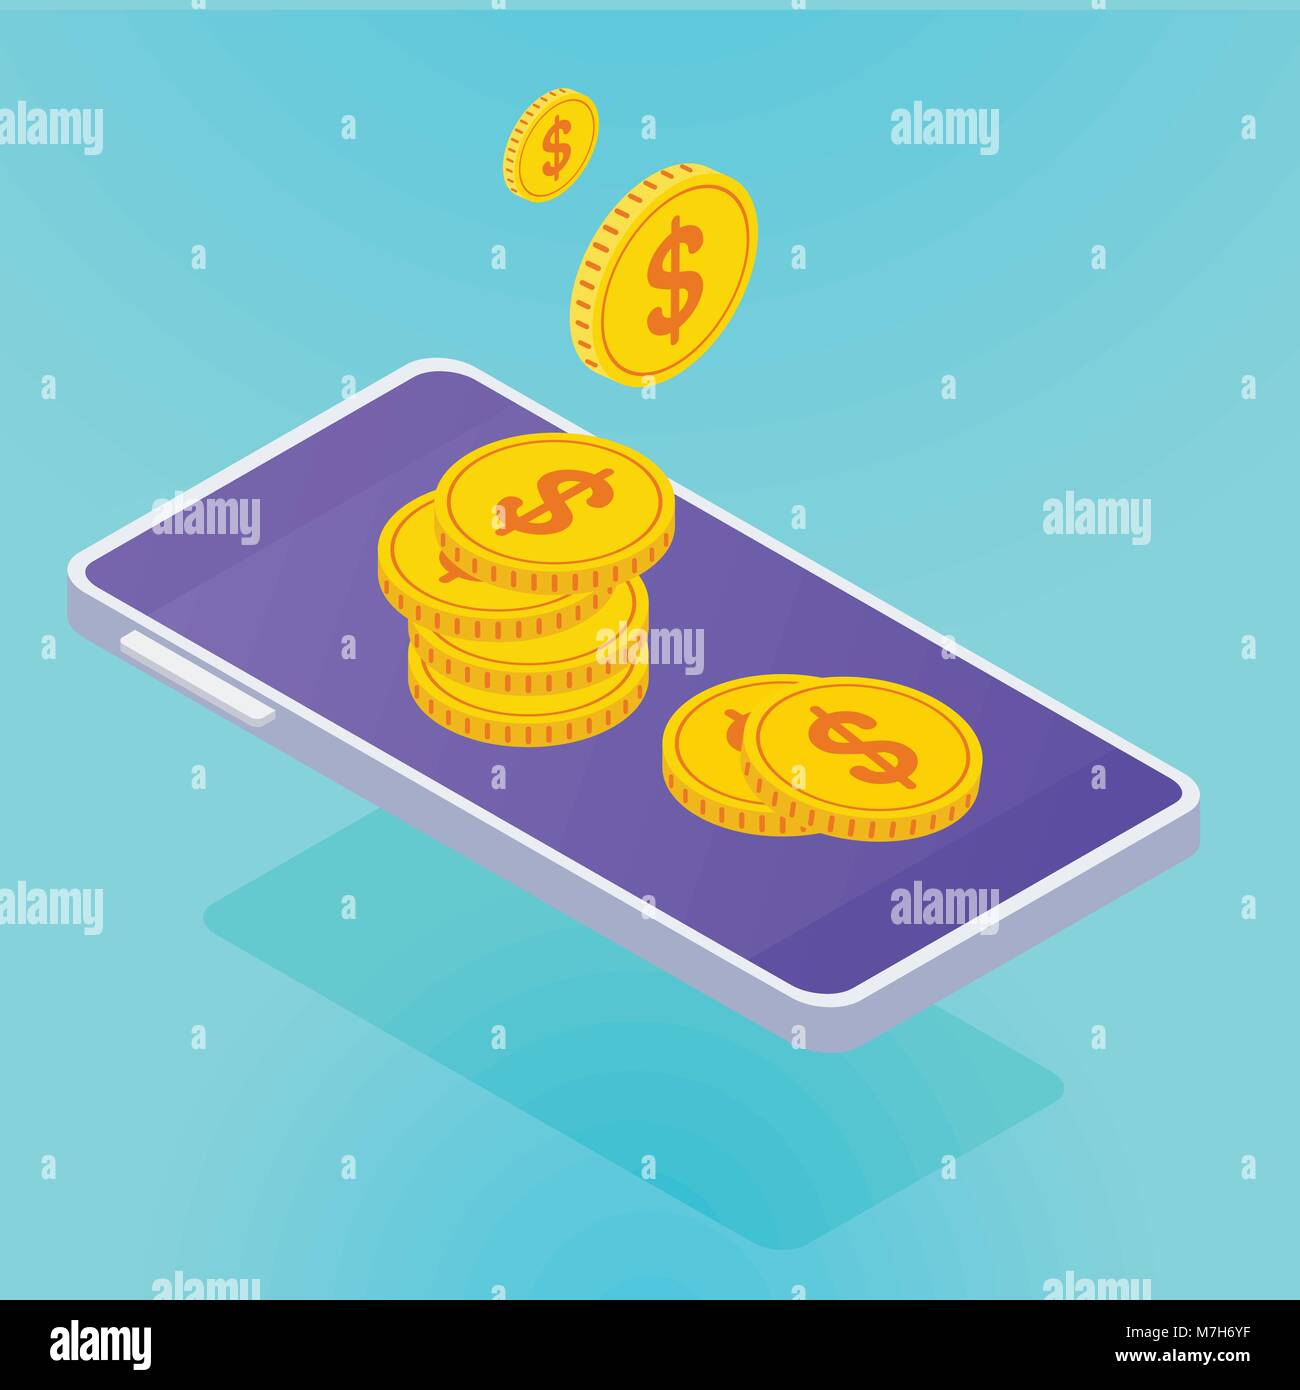 isometric smartphone with coins - Stock Image